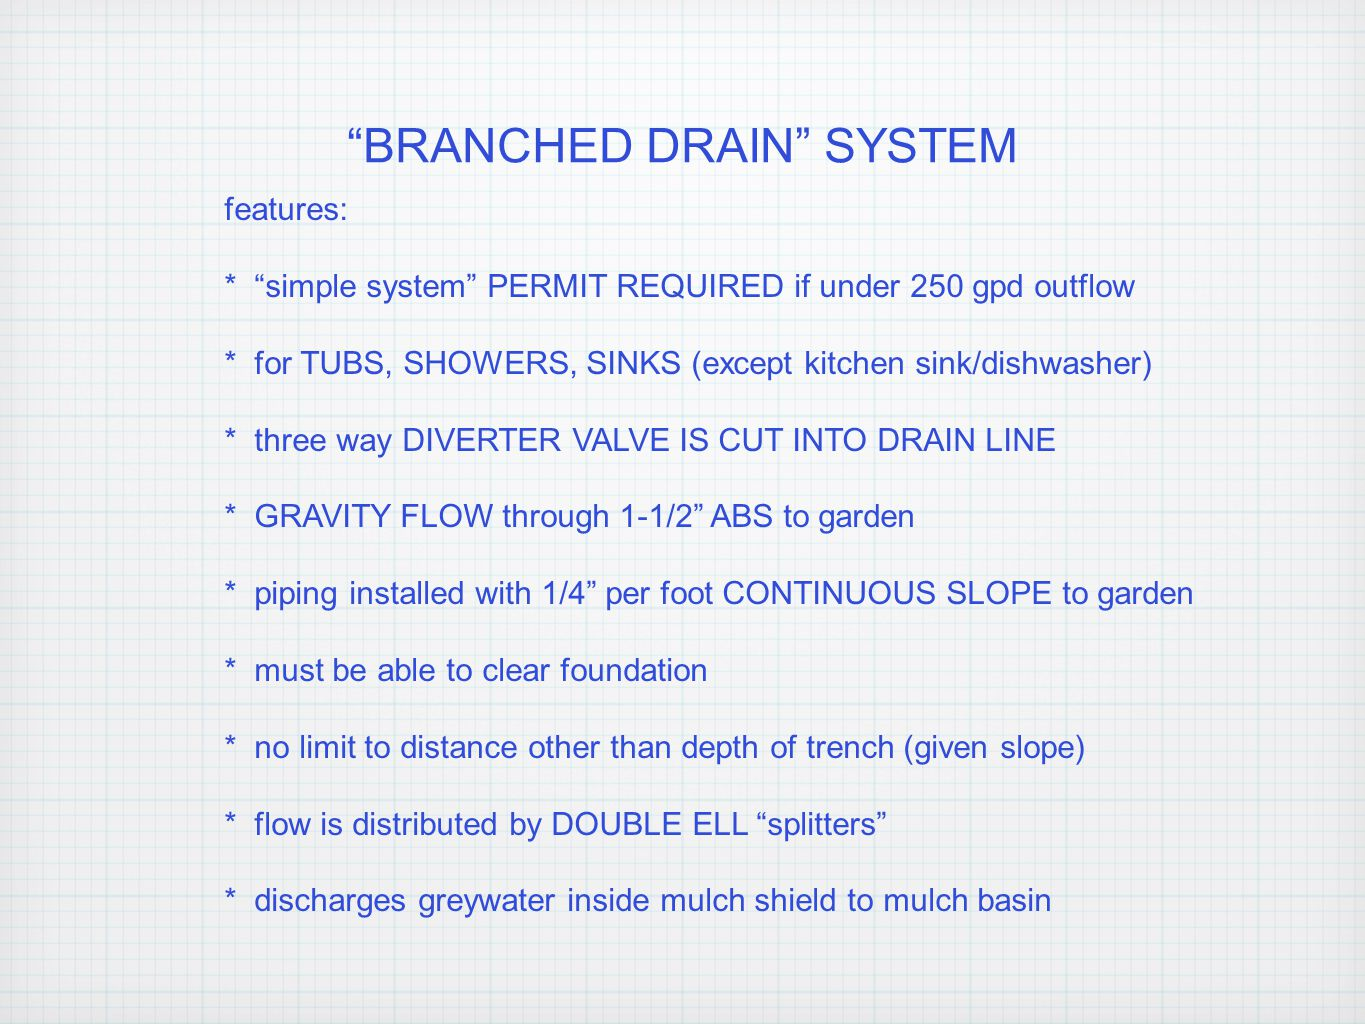 BRANCHED DRAIN SYSTEM features: * simple system PERMIT REQUIRED if under 250 gpd outflow * for TUBS, SHOWERS, SINKS (except kitchen sink/dishwasher) * three way DIVERTER VALVE IS CUT INTO DRAIN LINE * GRAVITY FLOW through 1-1/2 ABS to garden * piping installed with 1/4 per foot CONTINUOUS SLOPE to garden * must be able to clear foundation * no limit to distance other than depth of trench (given slope) * flow is distributed by DOUBLE ELL splitters * discharges greywater inside mulch shield to mulch basin